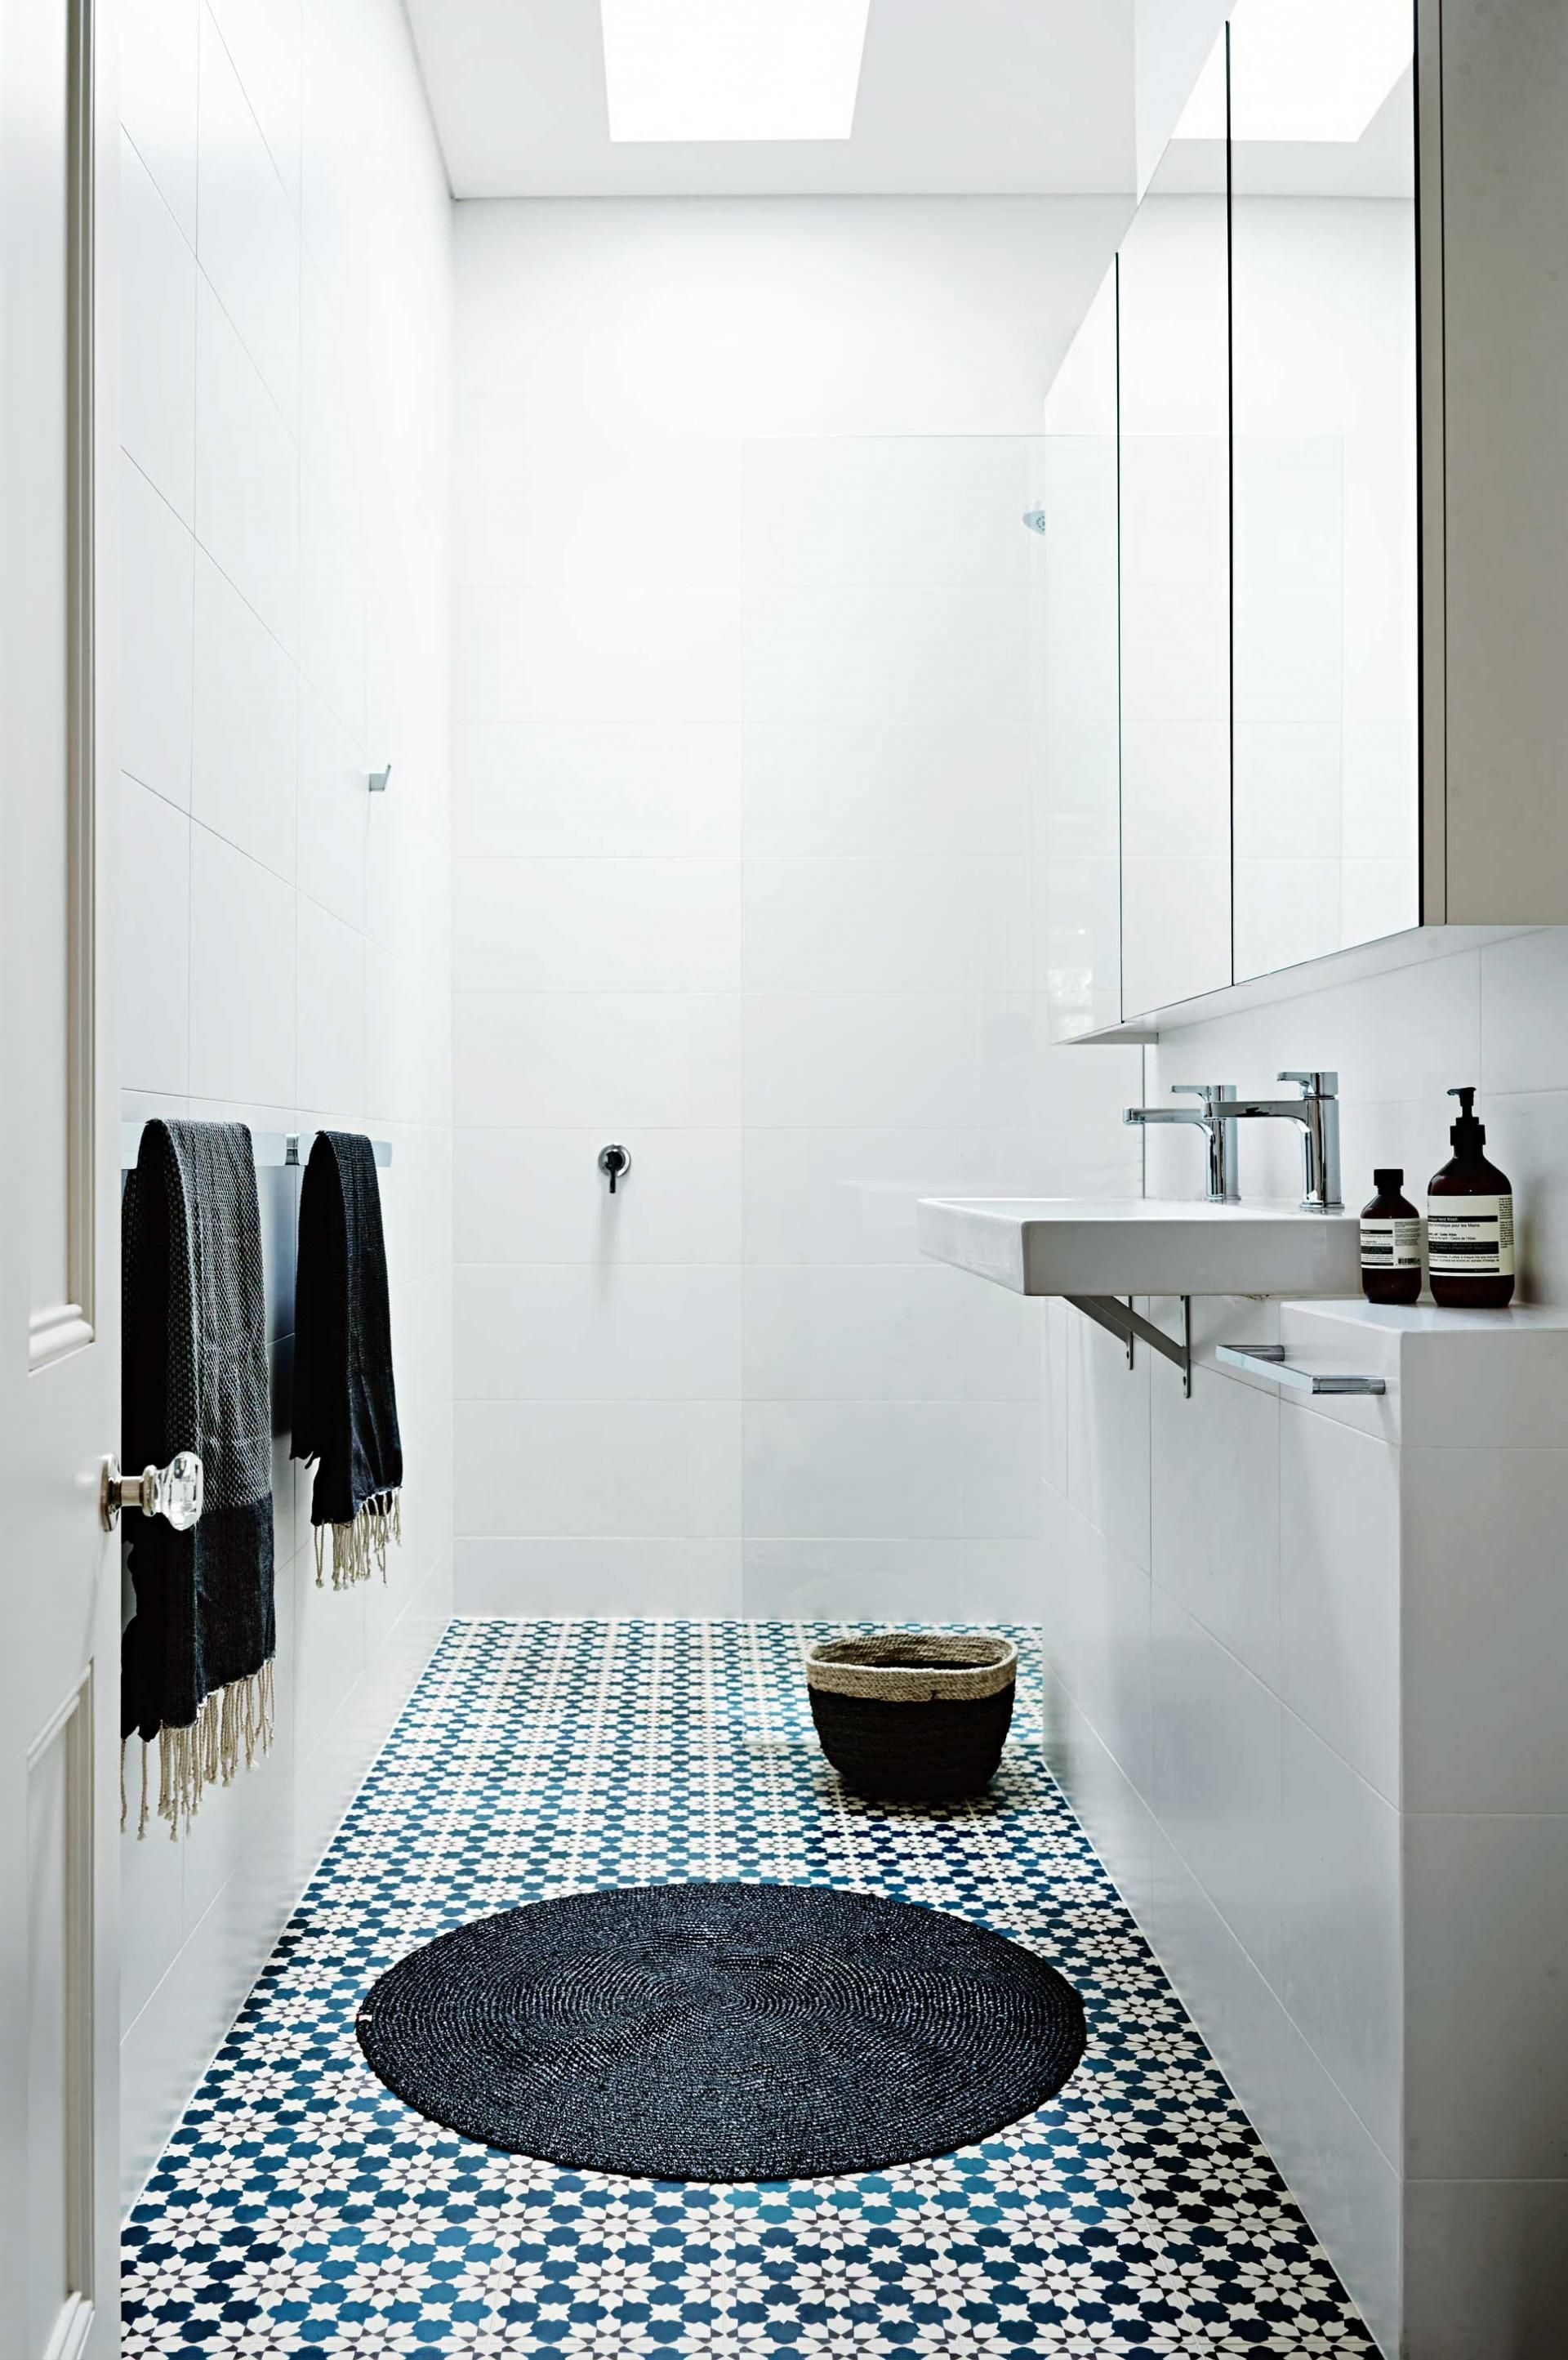 A renovation of a Victorian terrace. Shown here is the bathroom